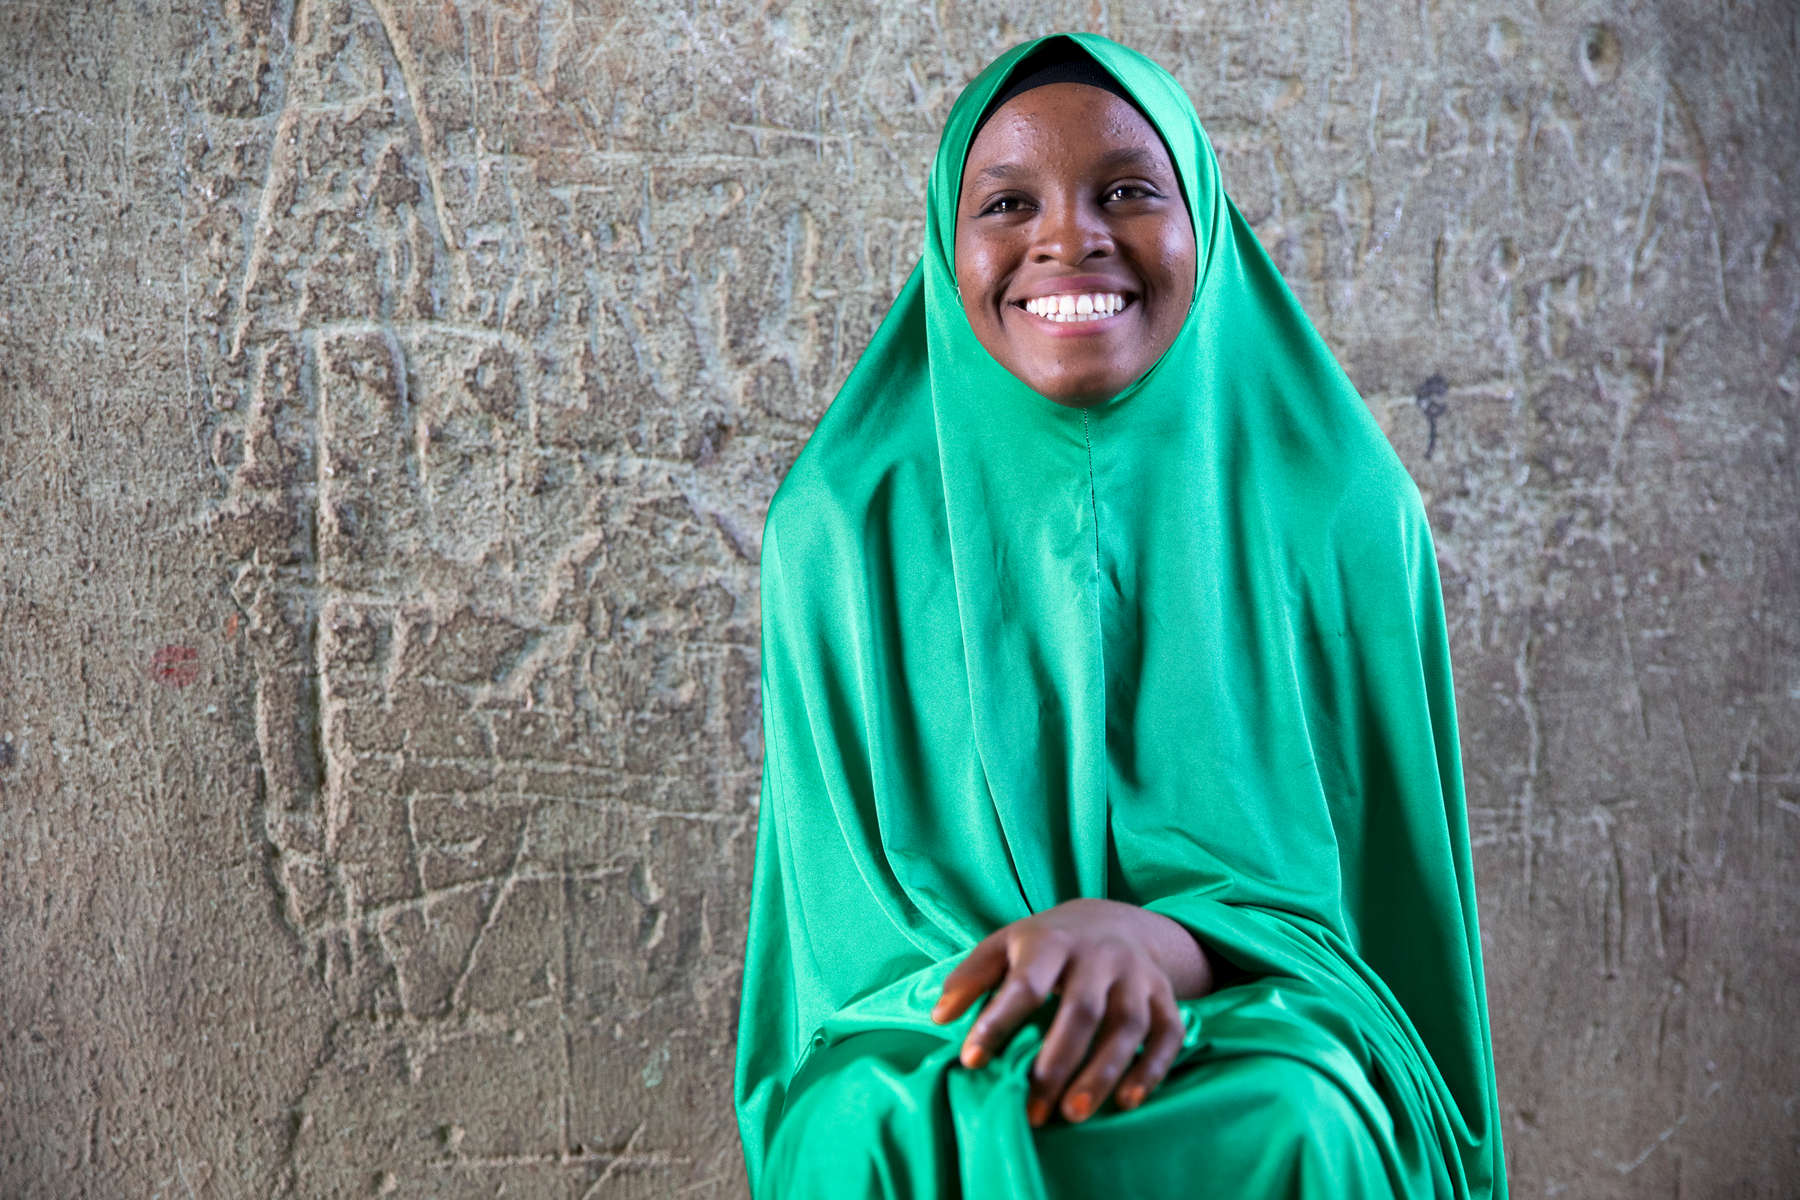 October 2018, Biu, Nigeria.  Fatima, 17, in her family's home. She started her own business selling sugar. She was motivated to start after learning about savings and money management in Mercy Corps' I-SING program, which provides safe spaces, livelihood grants and vocational training to vulnerable youth in Boko Haram affected communities in Nigeria.Now she sells in two locations — her home and her father's retail shop — and saves the income between a home bank and the Mercy Corps-facilitated savings group (VSLA) where she is a member. When the VSLA pays out next month, she is excited to build her business even more. Even though her family is struggling to meet their needs, Fatima is determined to finish school and be self-sufficient, believing independent women are the key to development. She wants to be a midwife when she is older, so she can help women more.